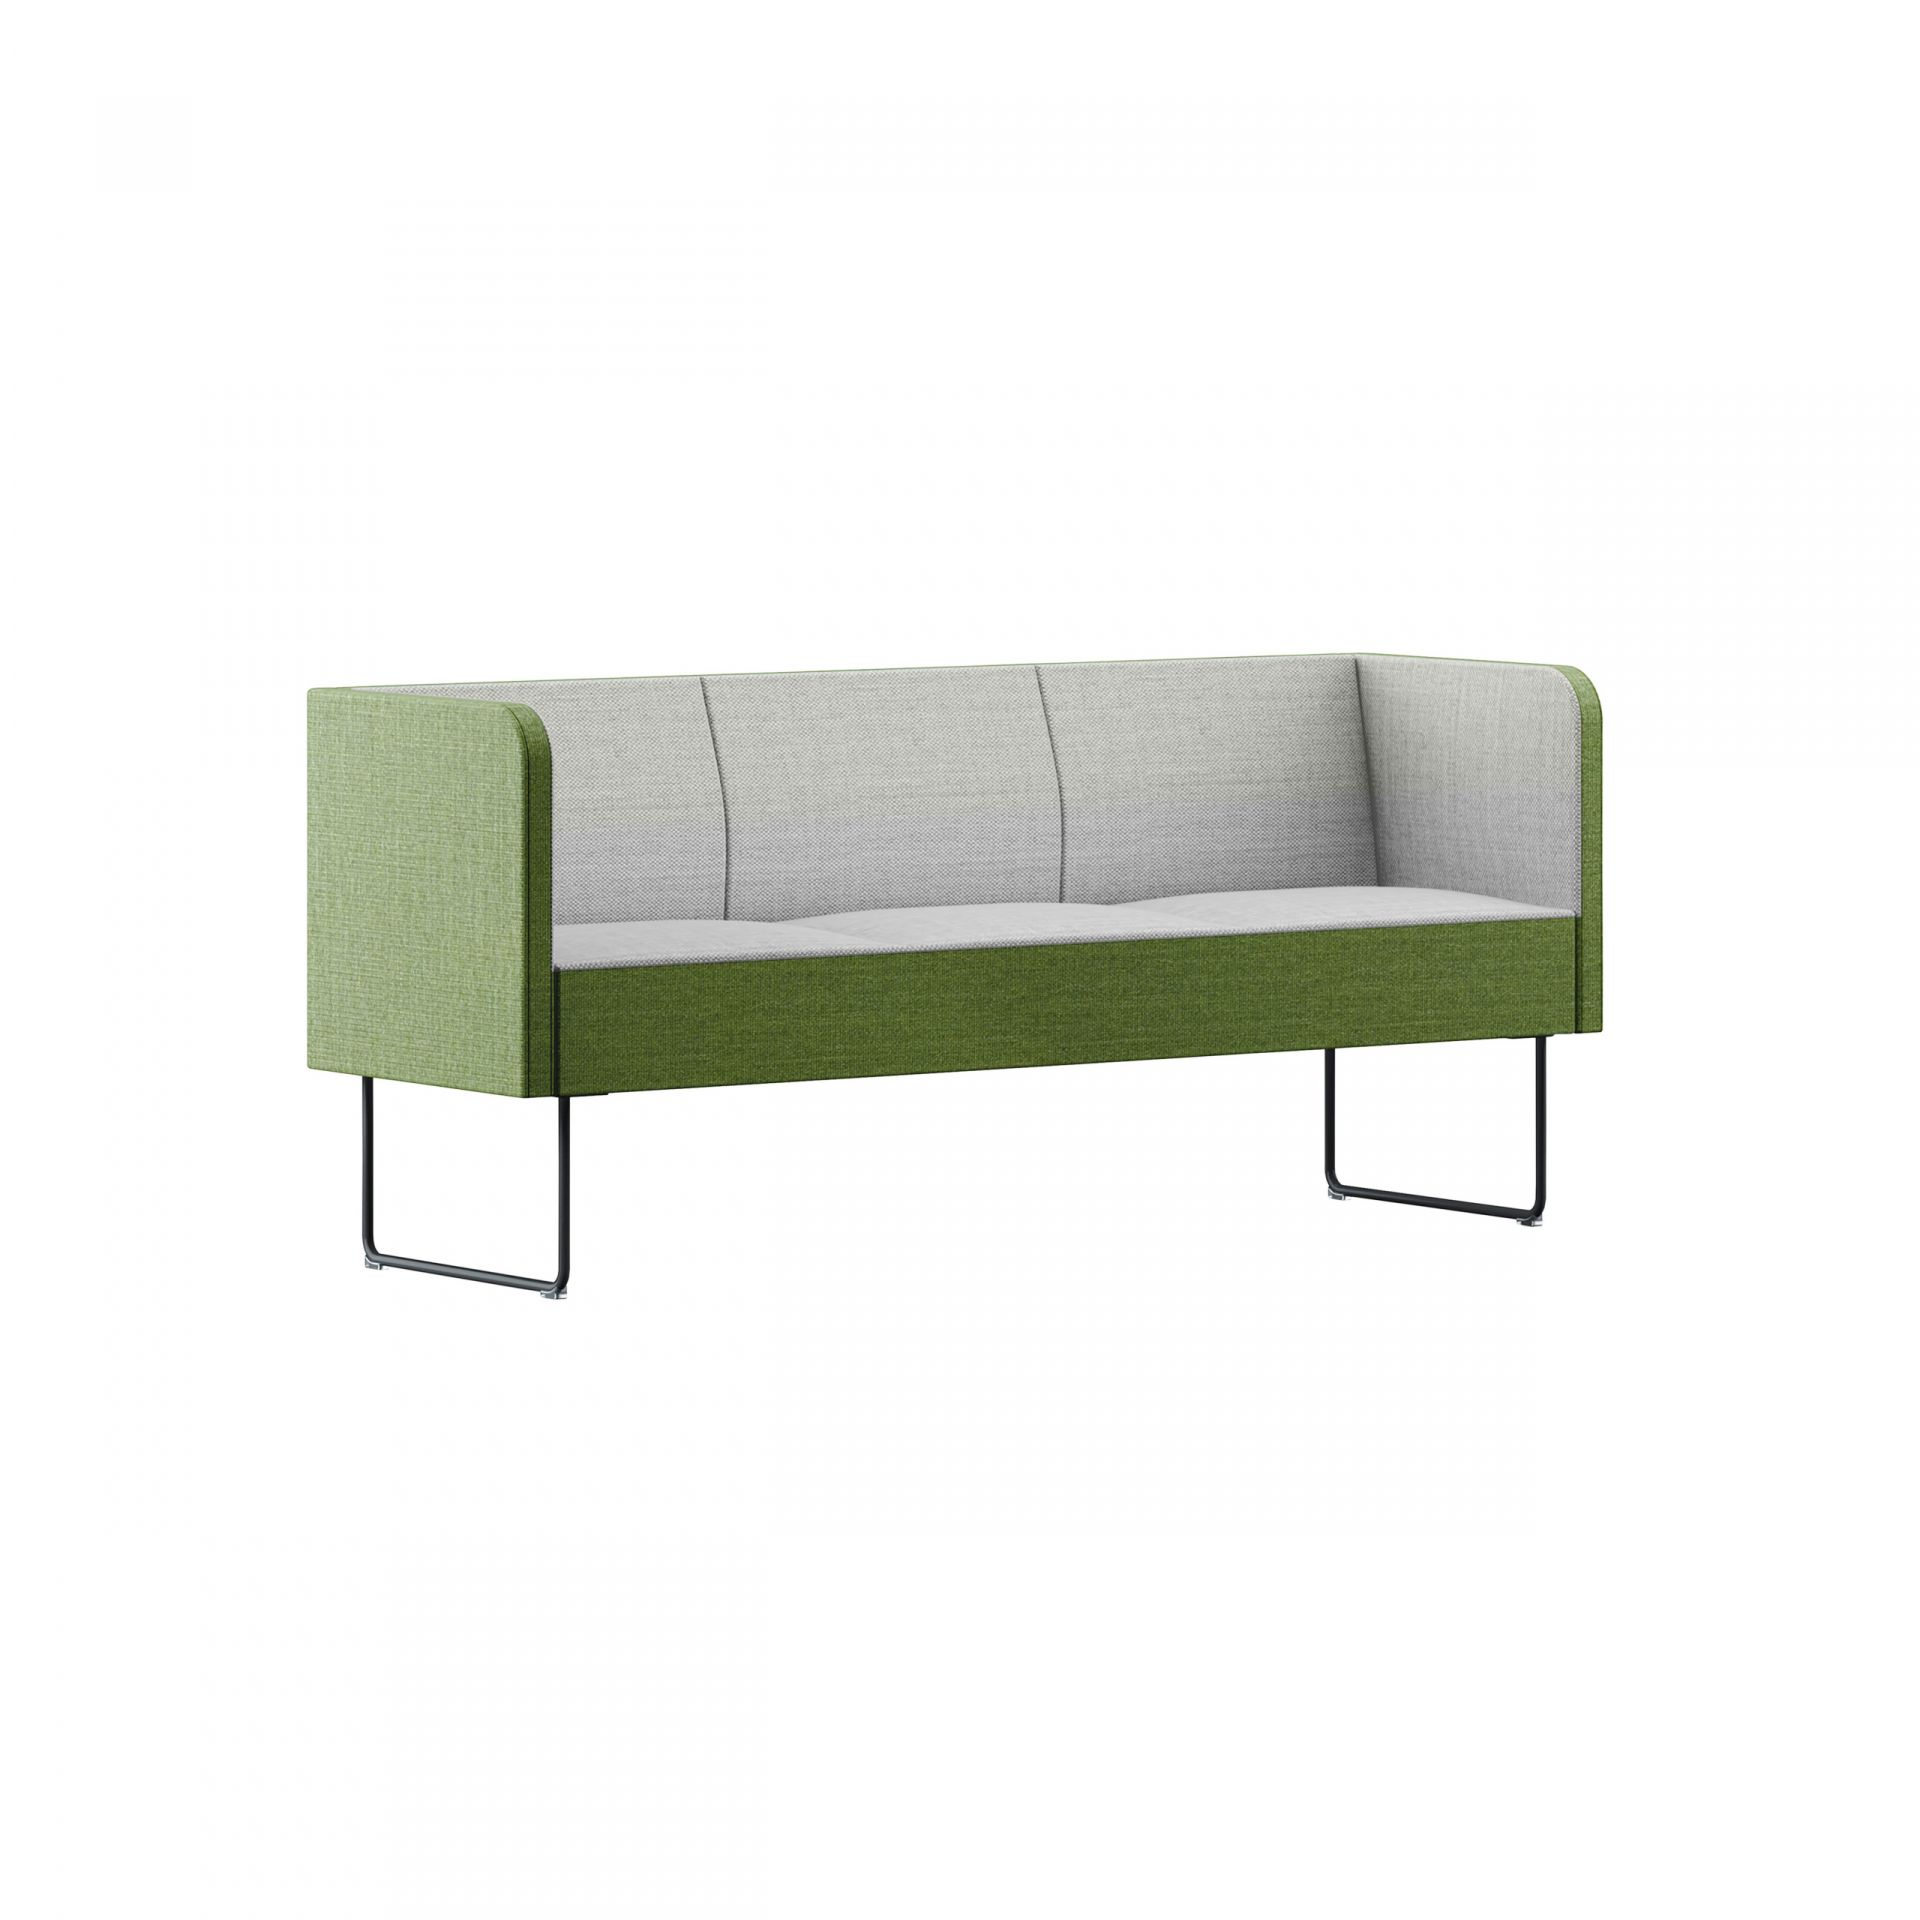 Mingle Sofa product image 1